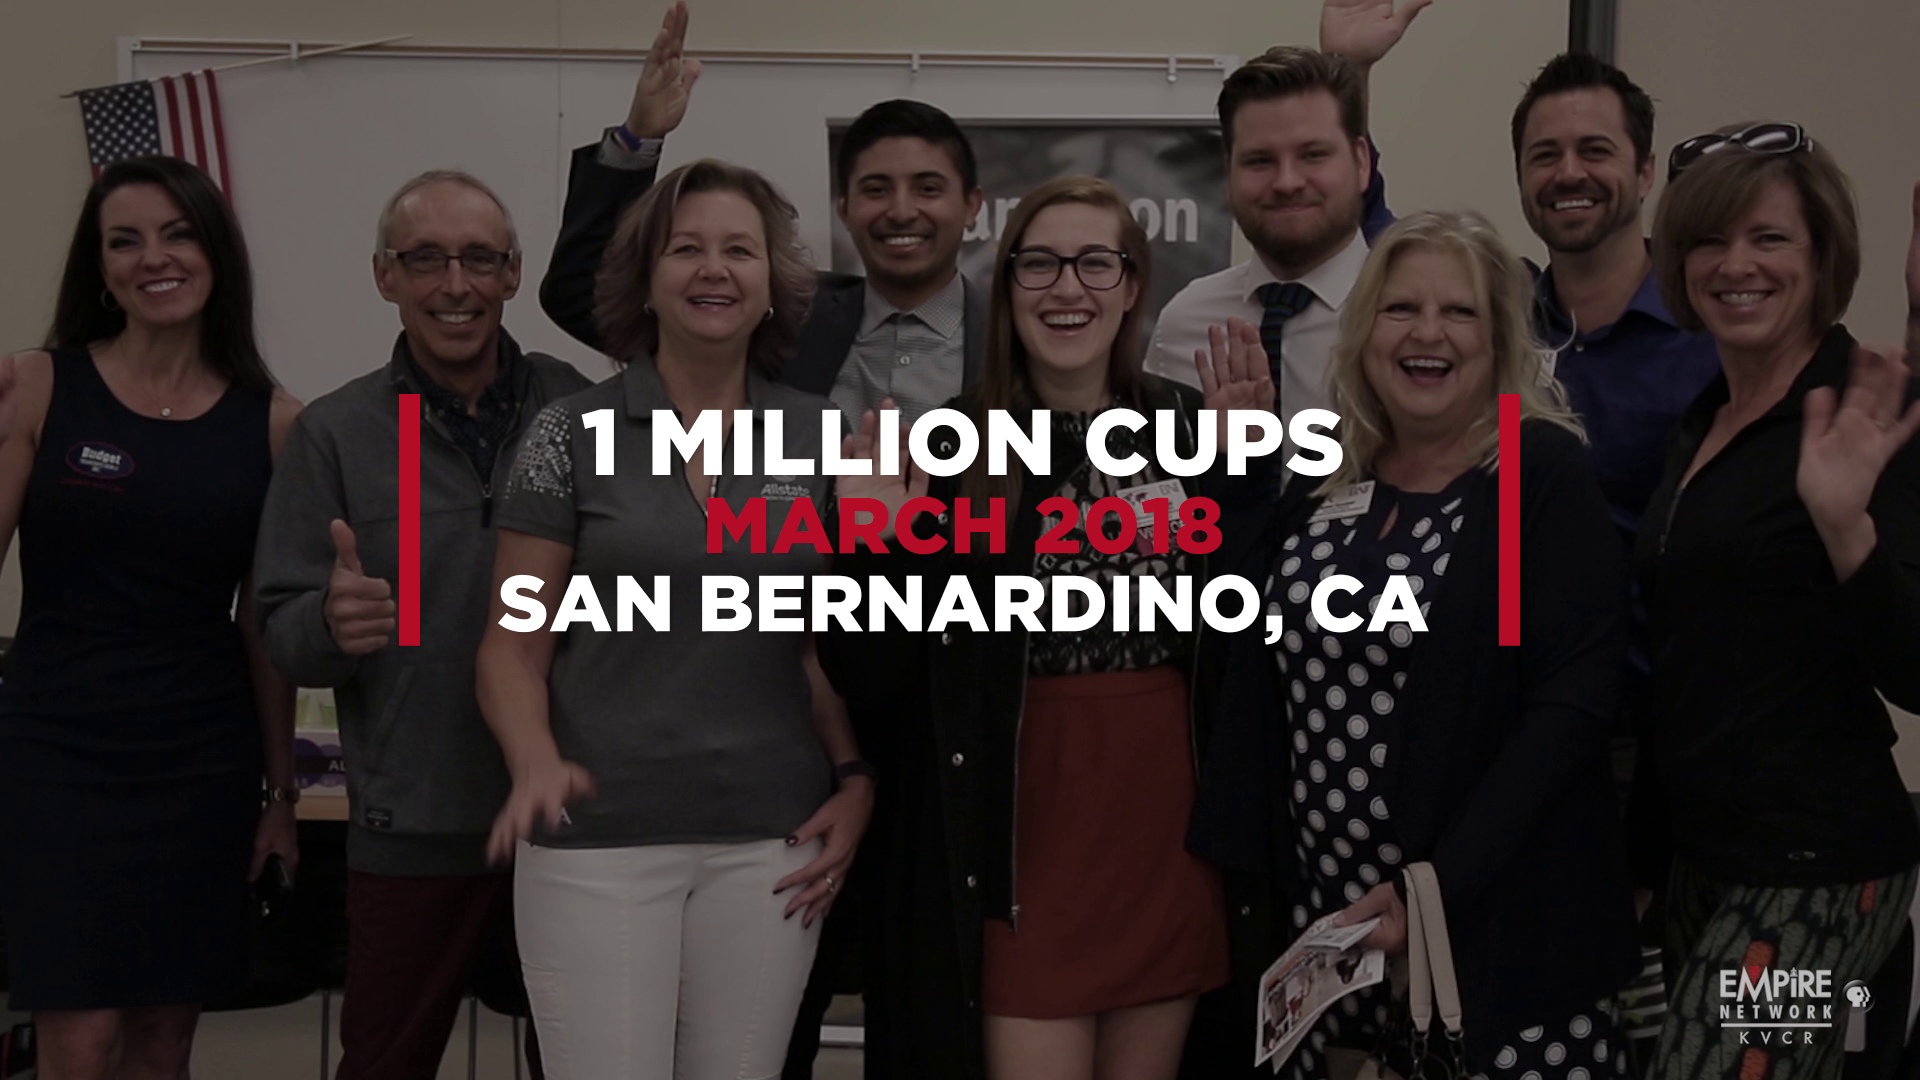 One Million Cups March 2018